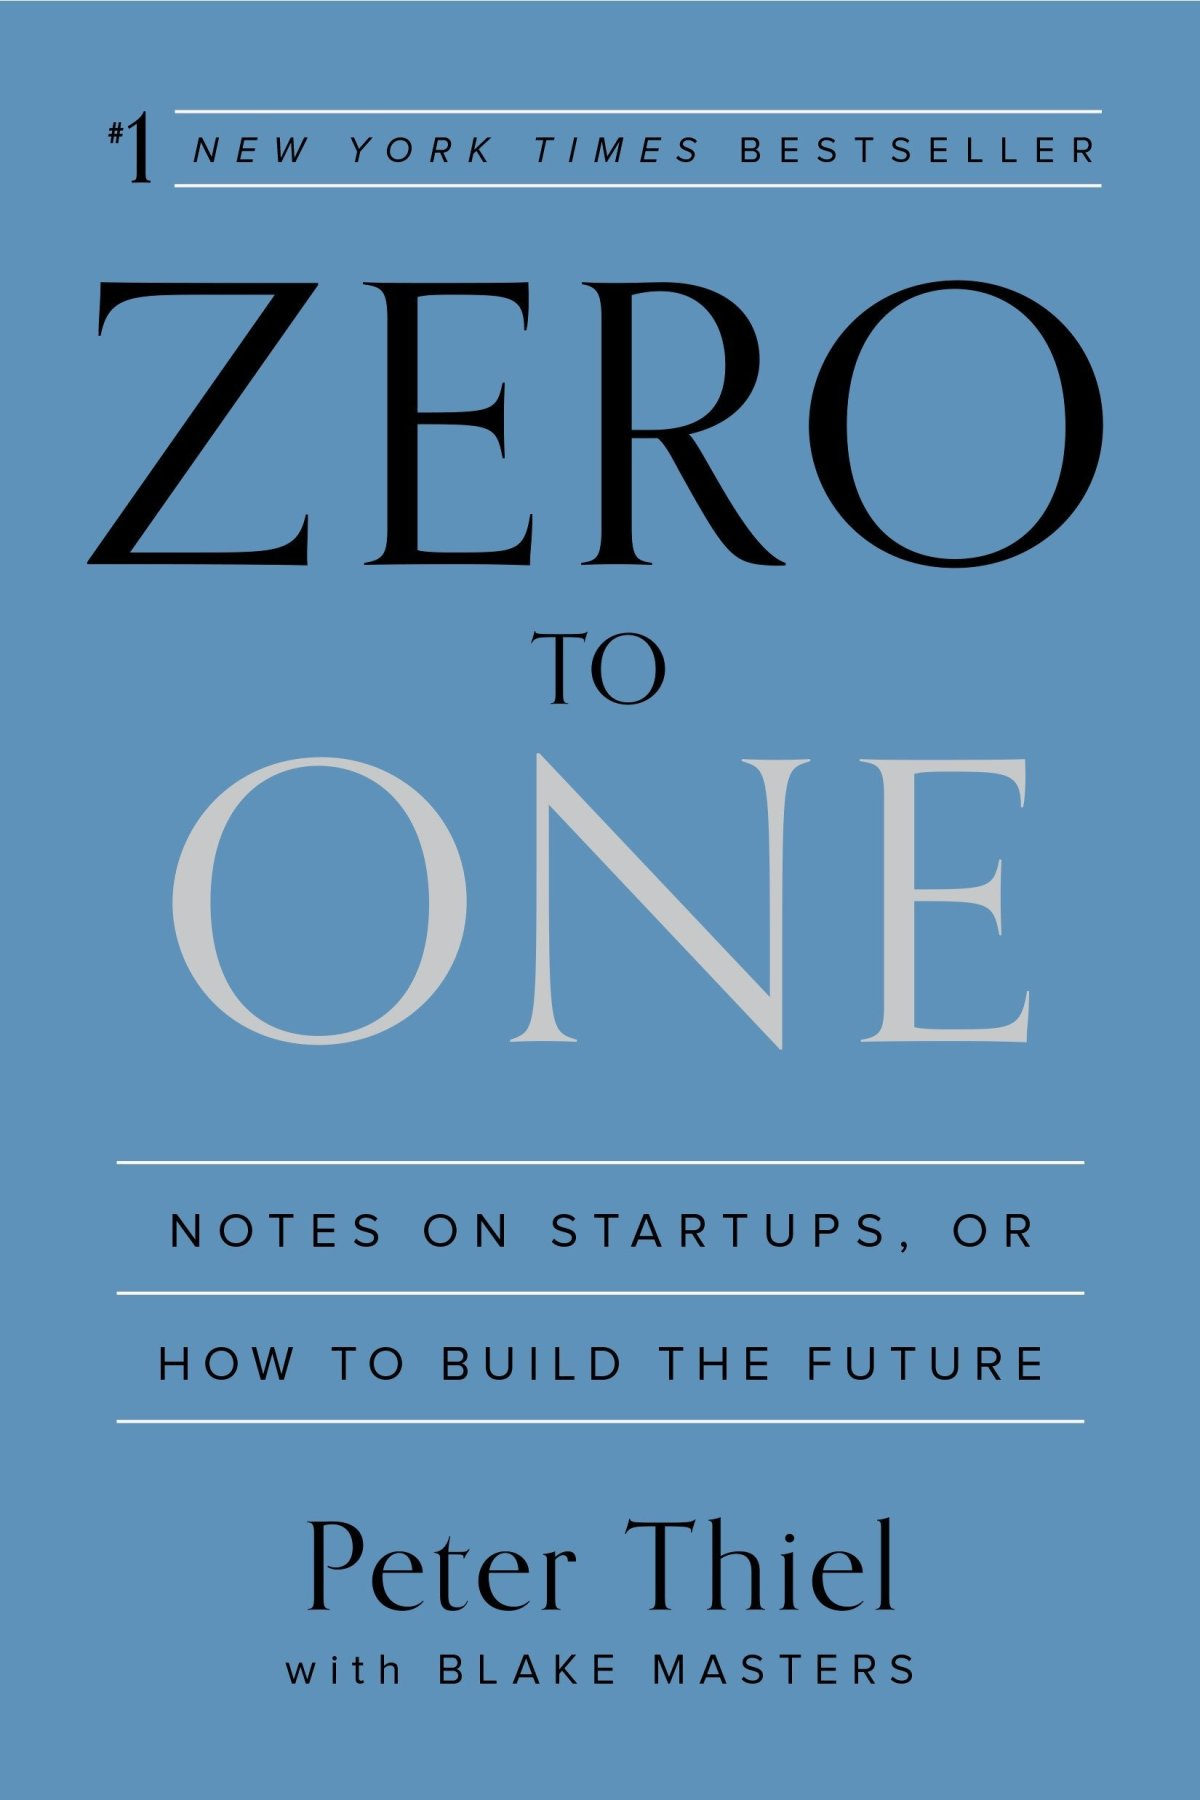 Zero to One: Notes on Startups, or How to Build the Future: Thiel, Peter,  Masters, Blake: 9780804139298: Amazon.com: Books